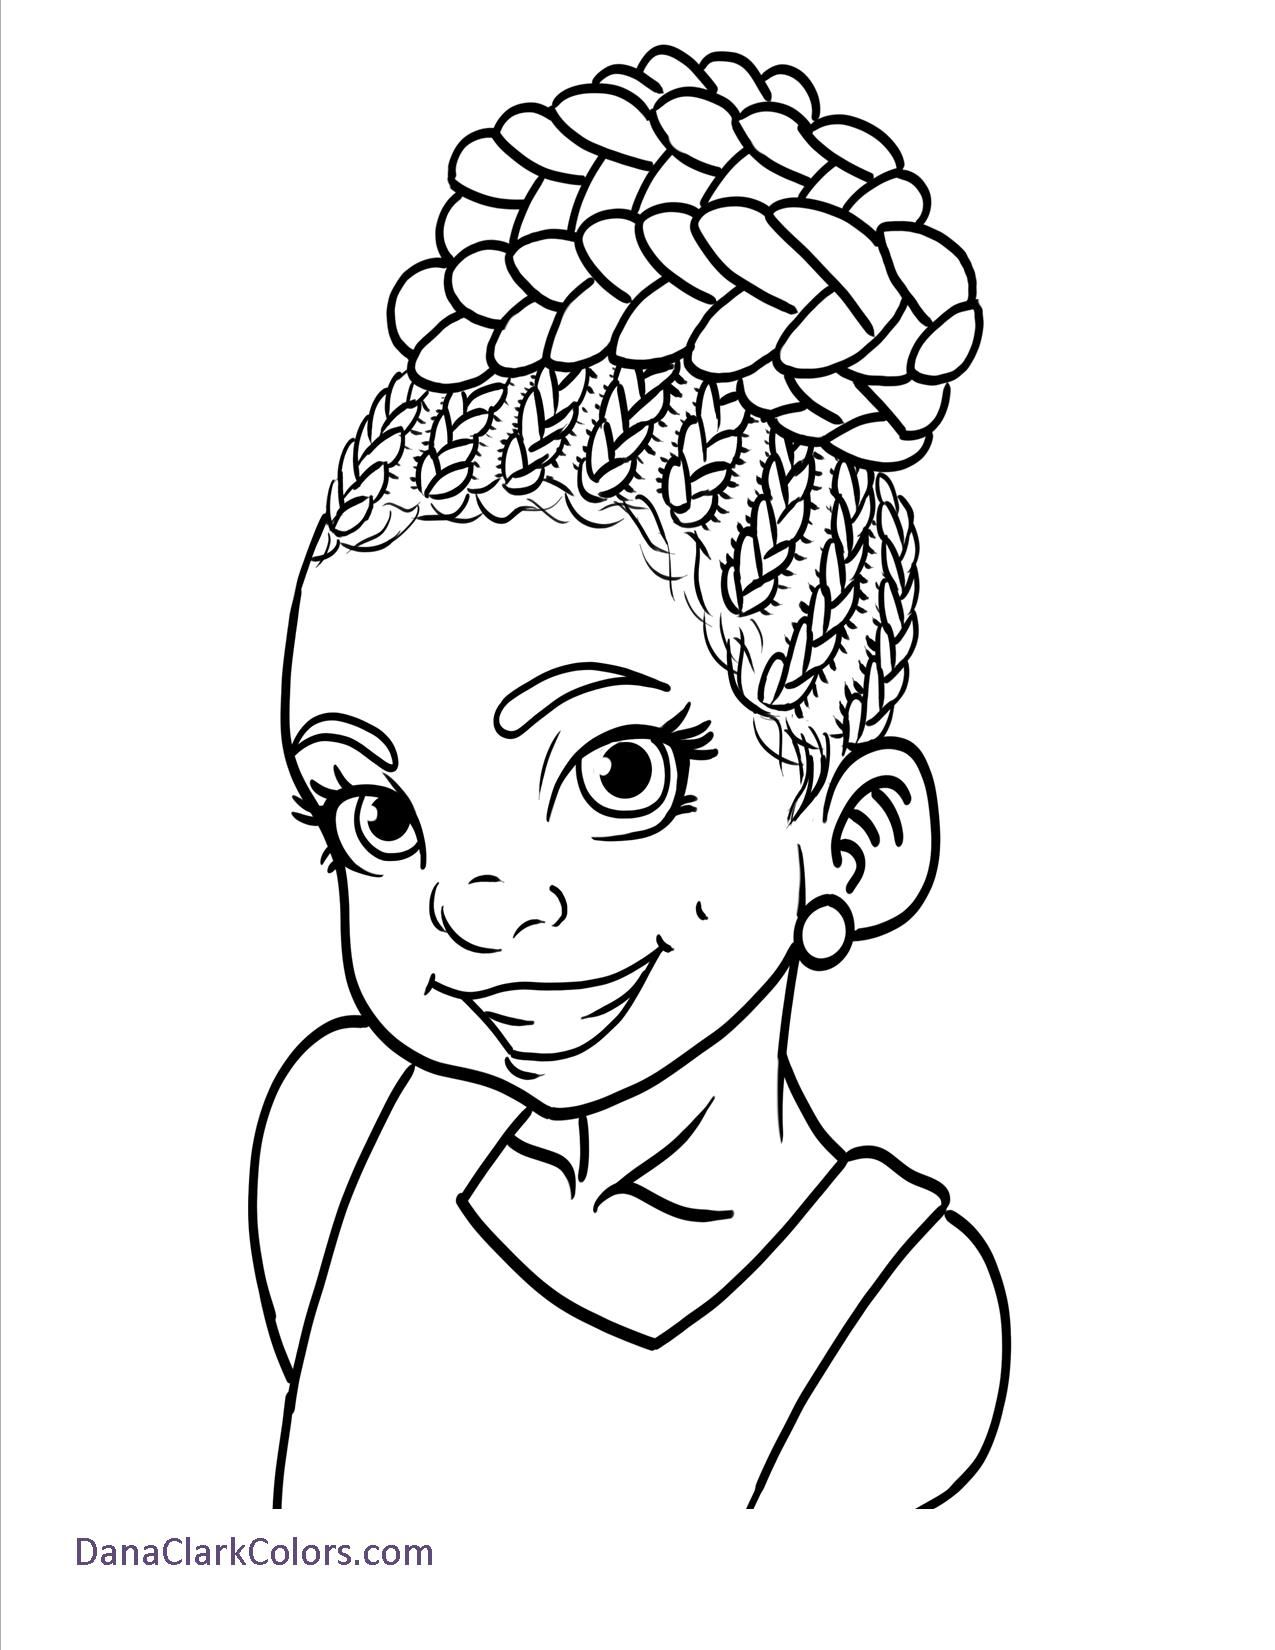 printable coloring pages haircuts - photo#23